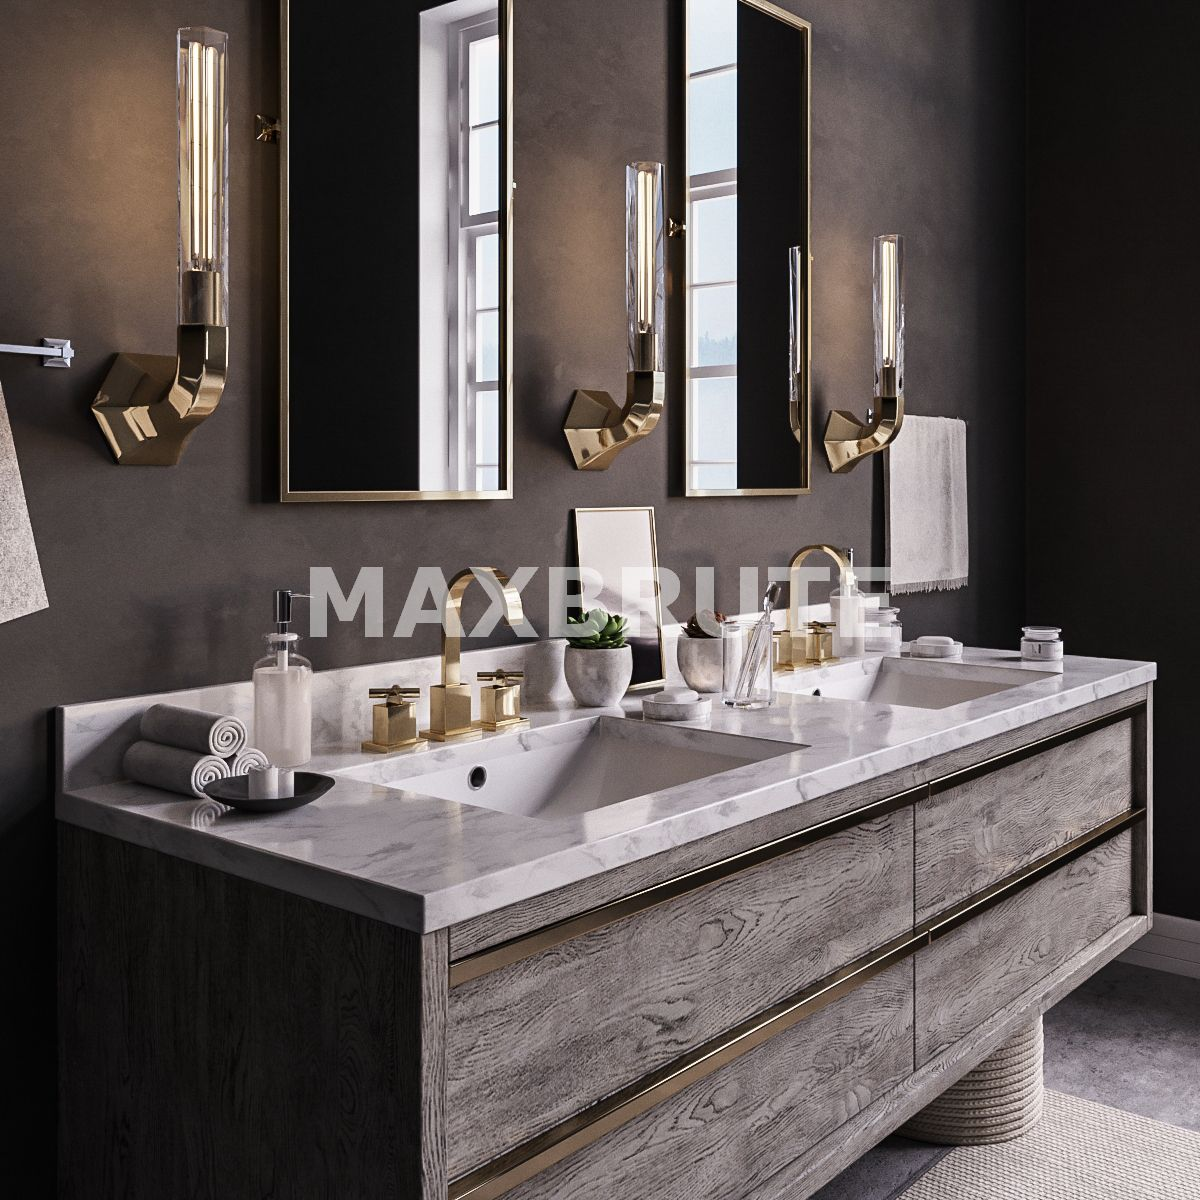 Furniture bathroom furniture maxbrute